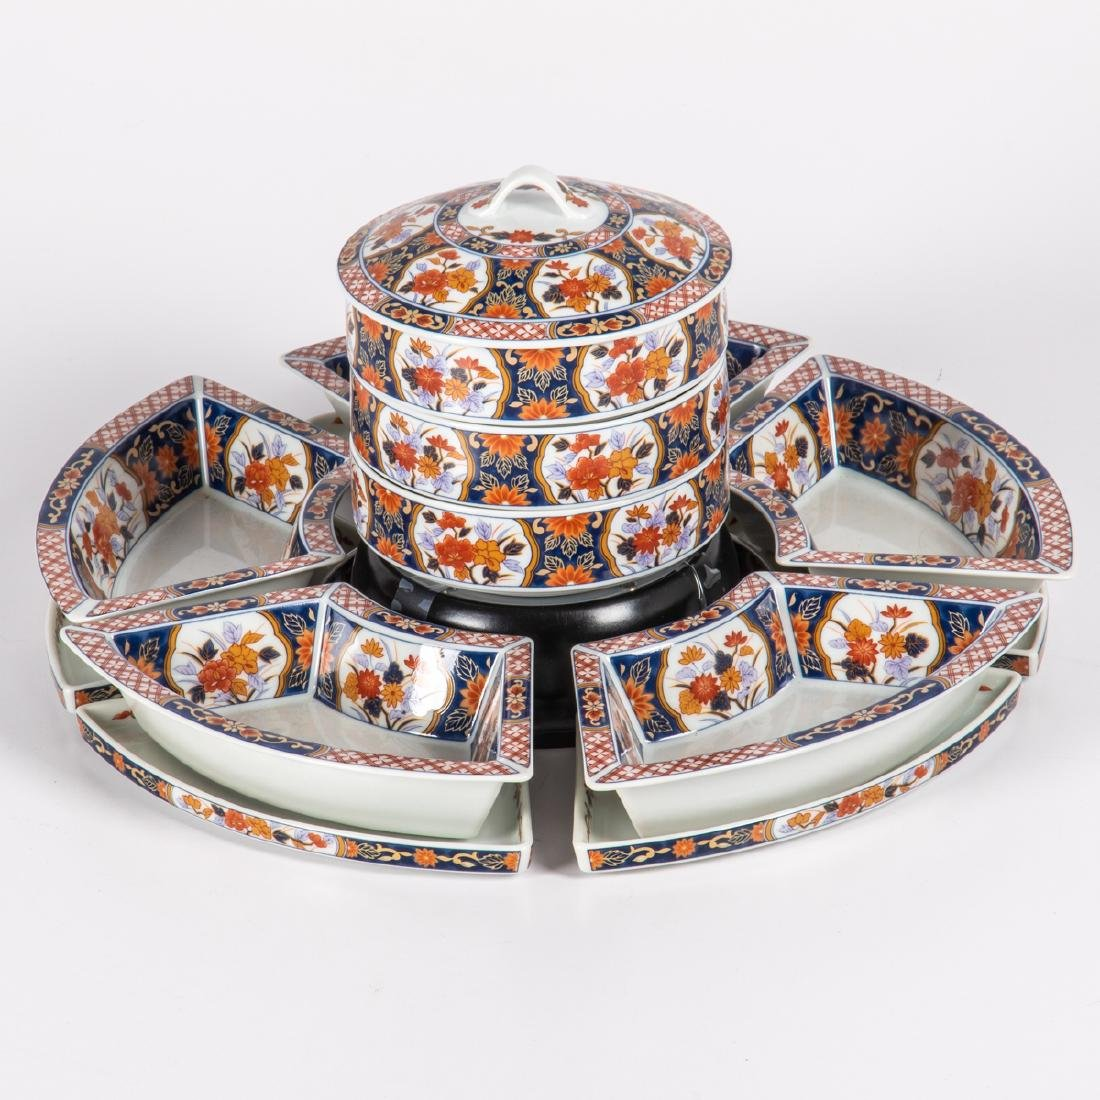 A Japanese Imari Porcelain Jubako Set with Lazy Susan,